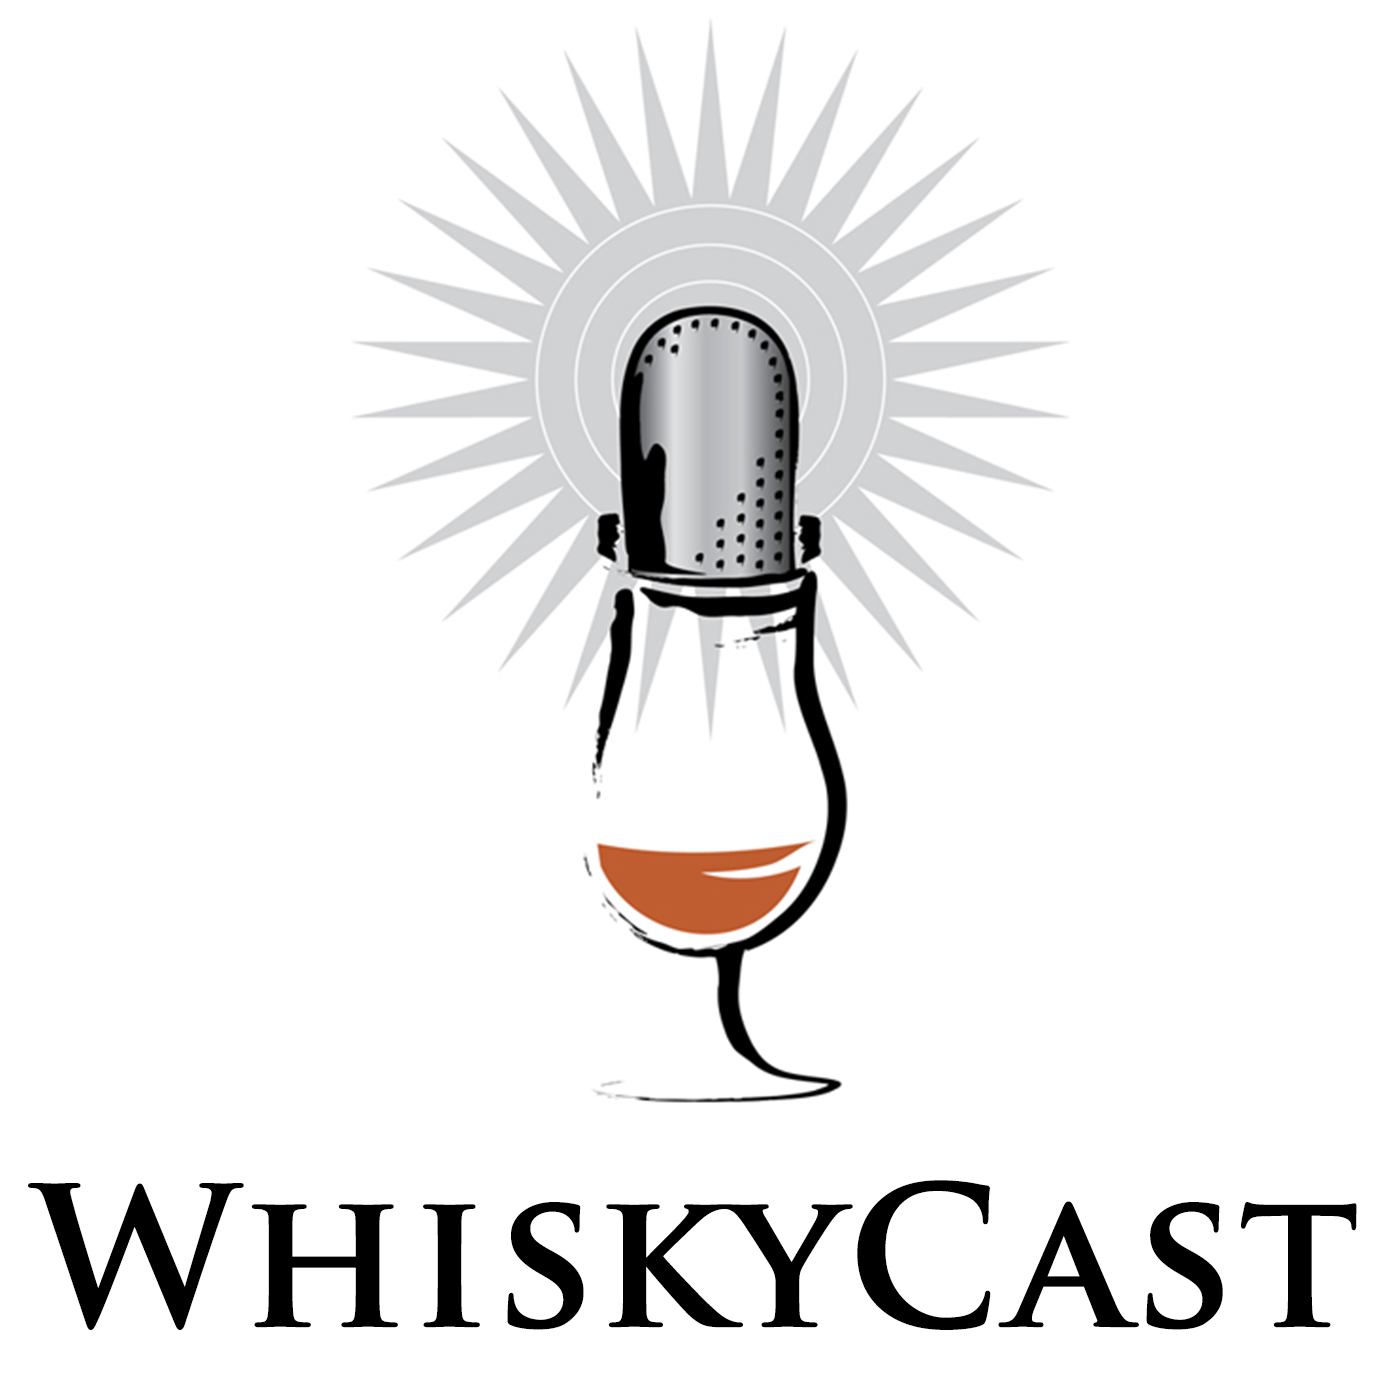 WhiskyCast Episode 462: January 19, 2014